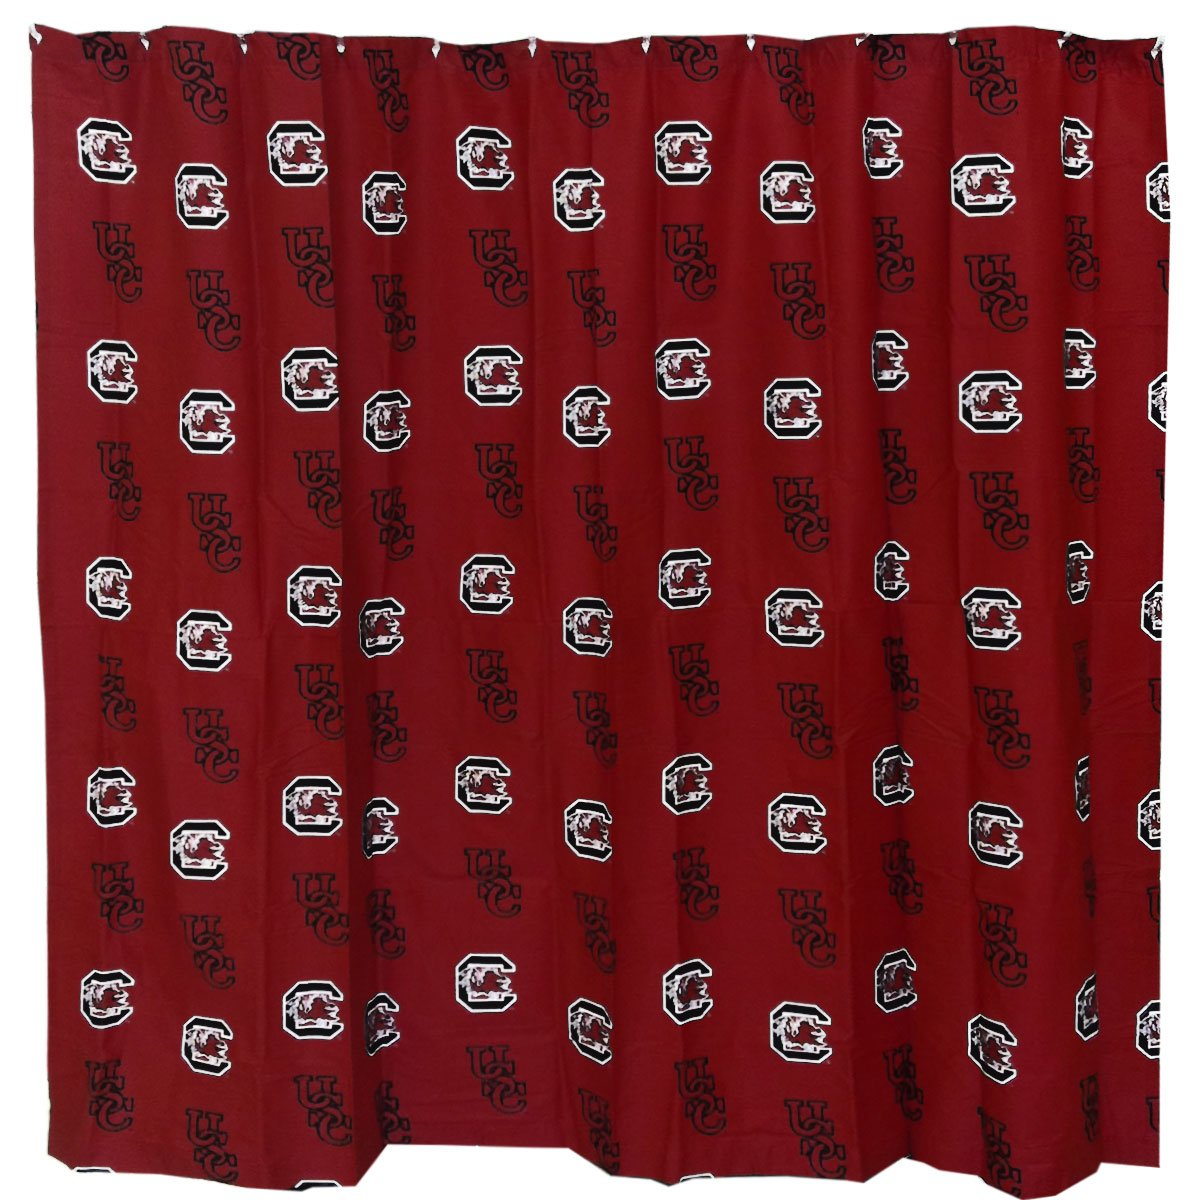 College Covers Shower Curtain Cover, 70'' x 72'', South Carolina Gamecocks by College Covers